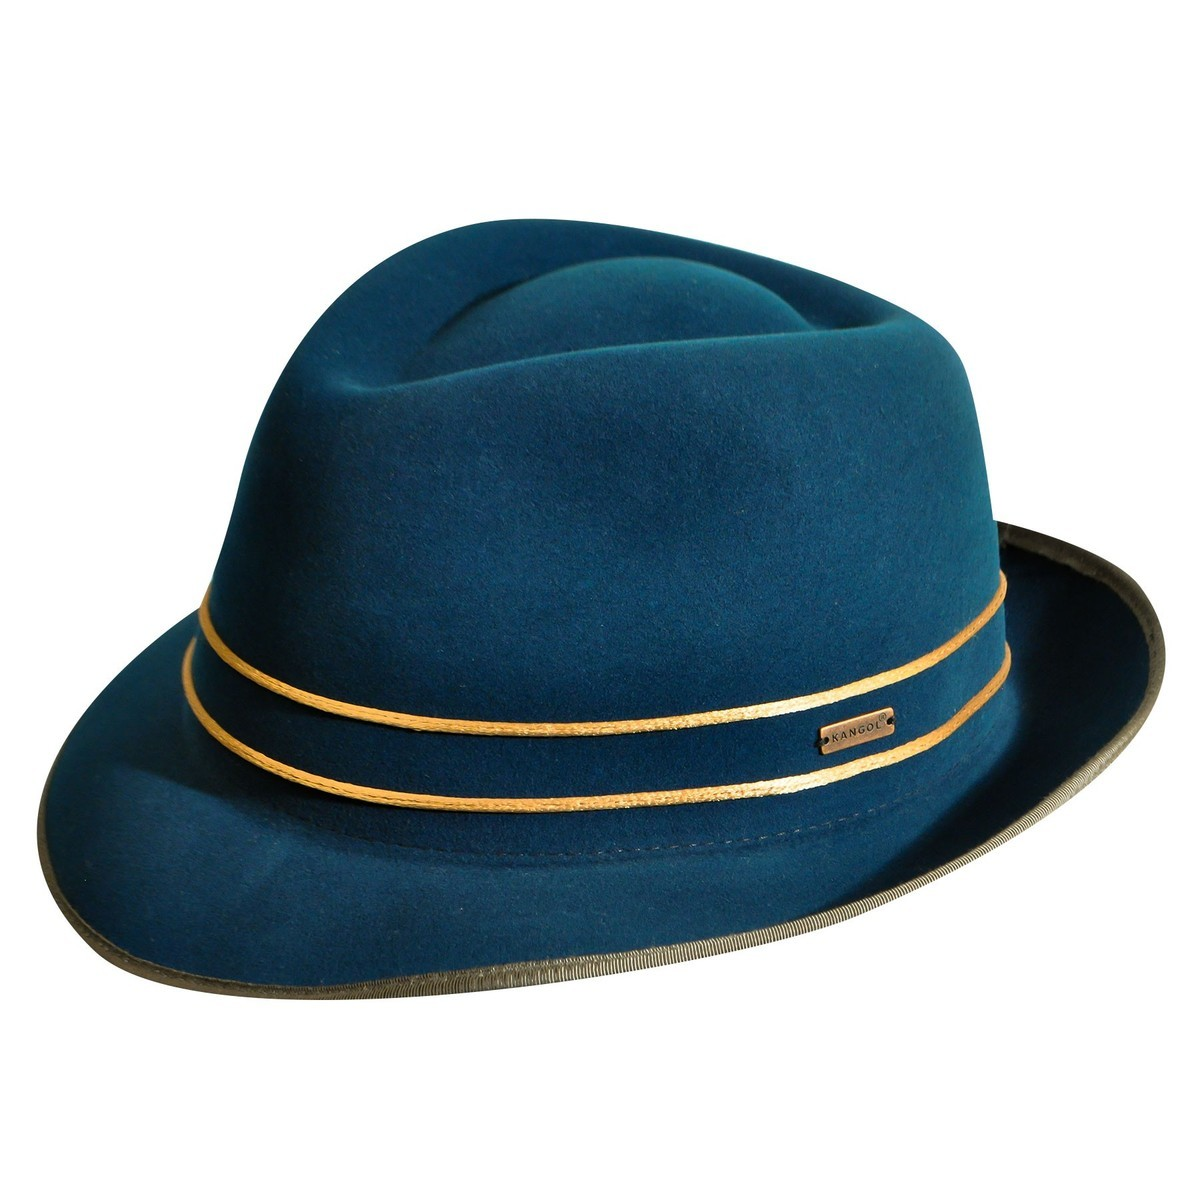 Kangol カンゴール Corded Hiro Trilby Midnight Trilby 帽子 Midnight